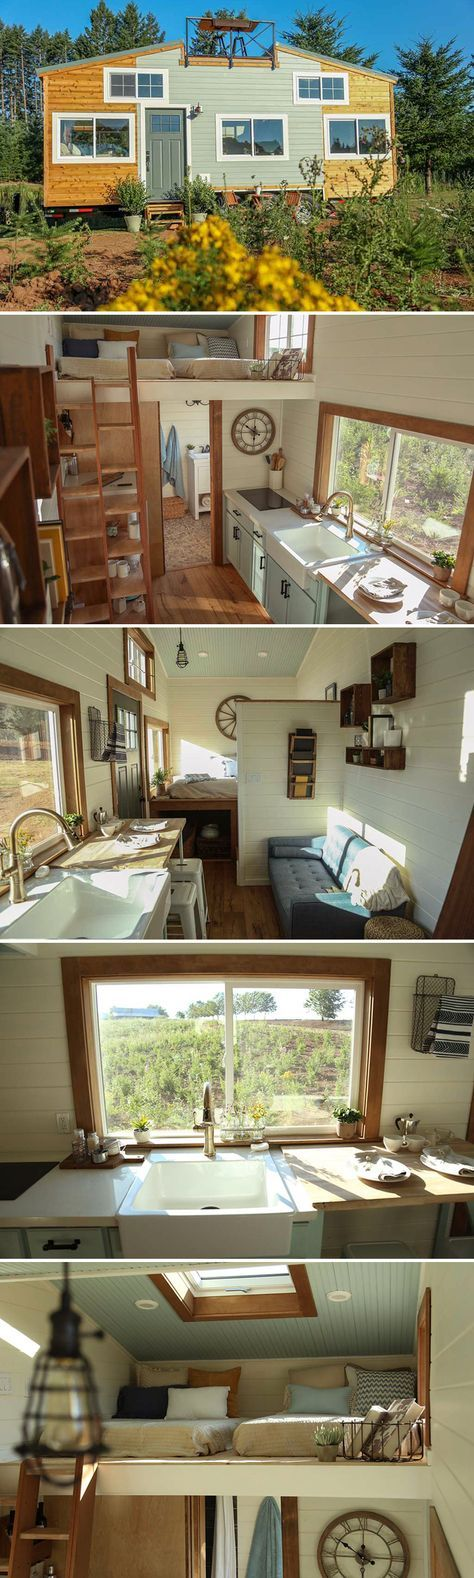 House Rustic Tiny Home by Tiny Heirloom